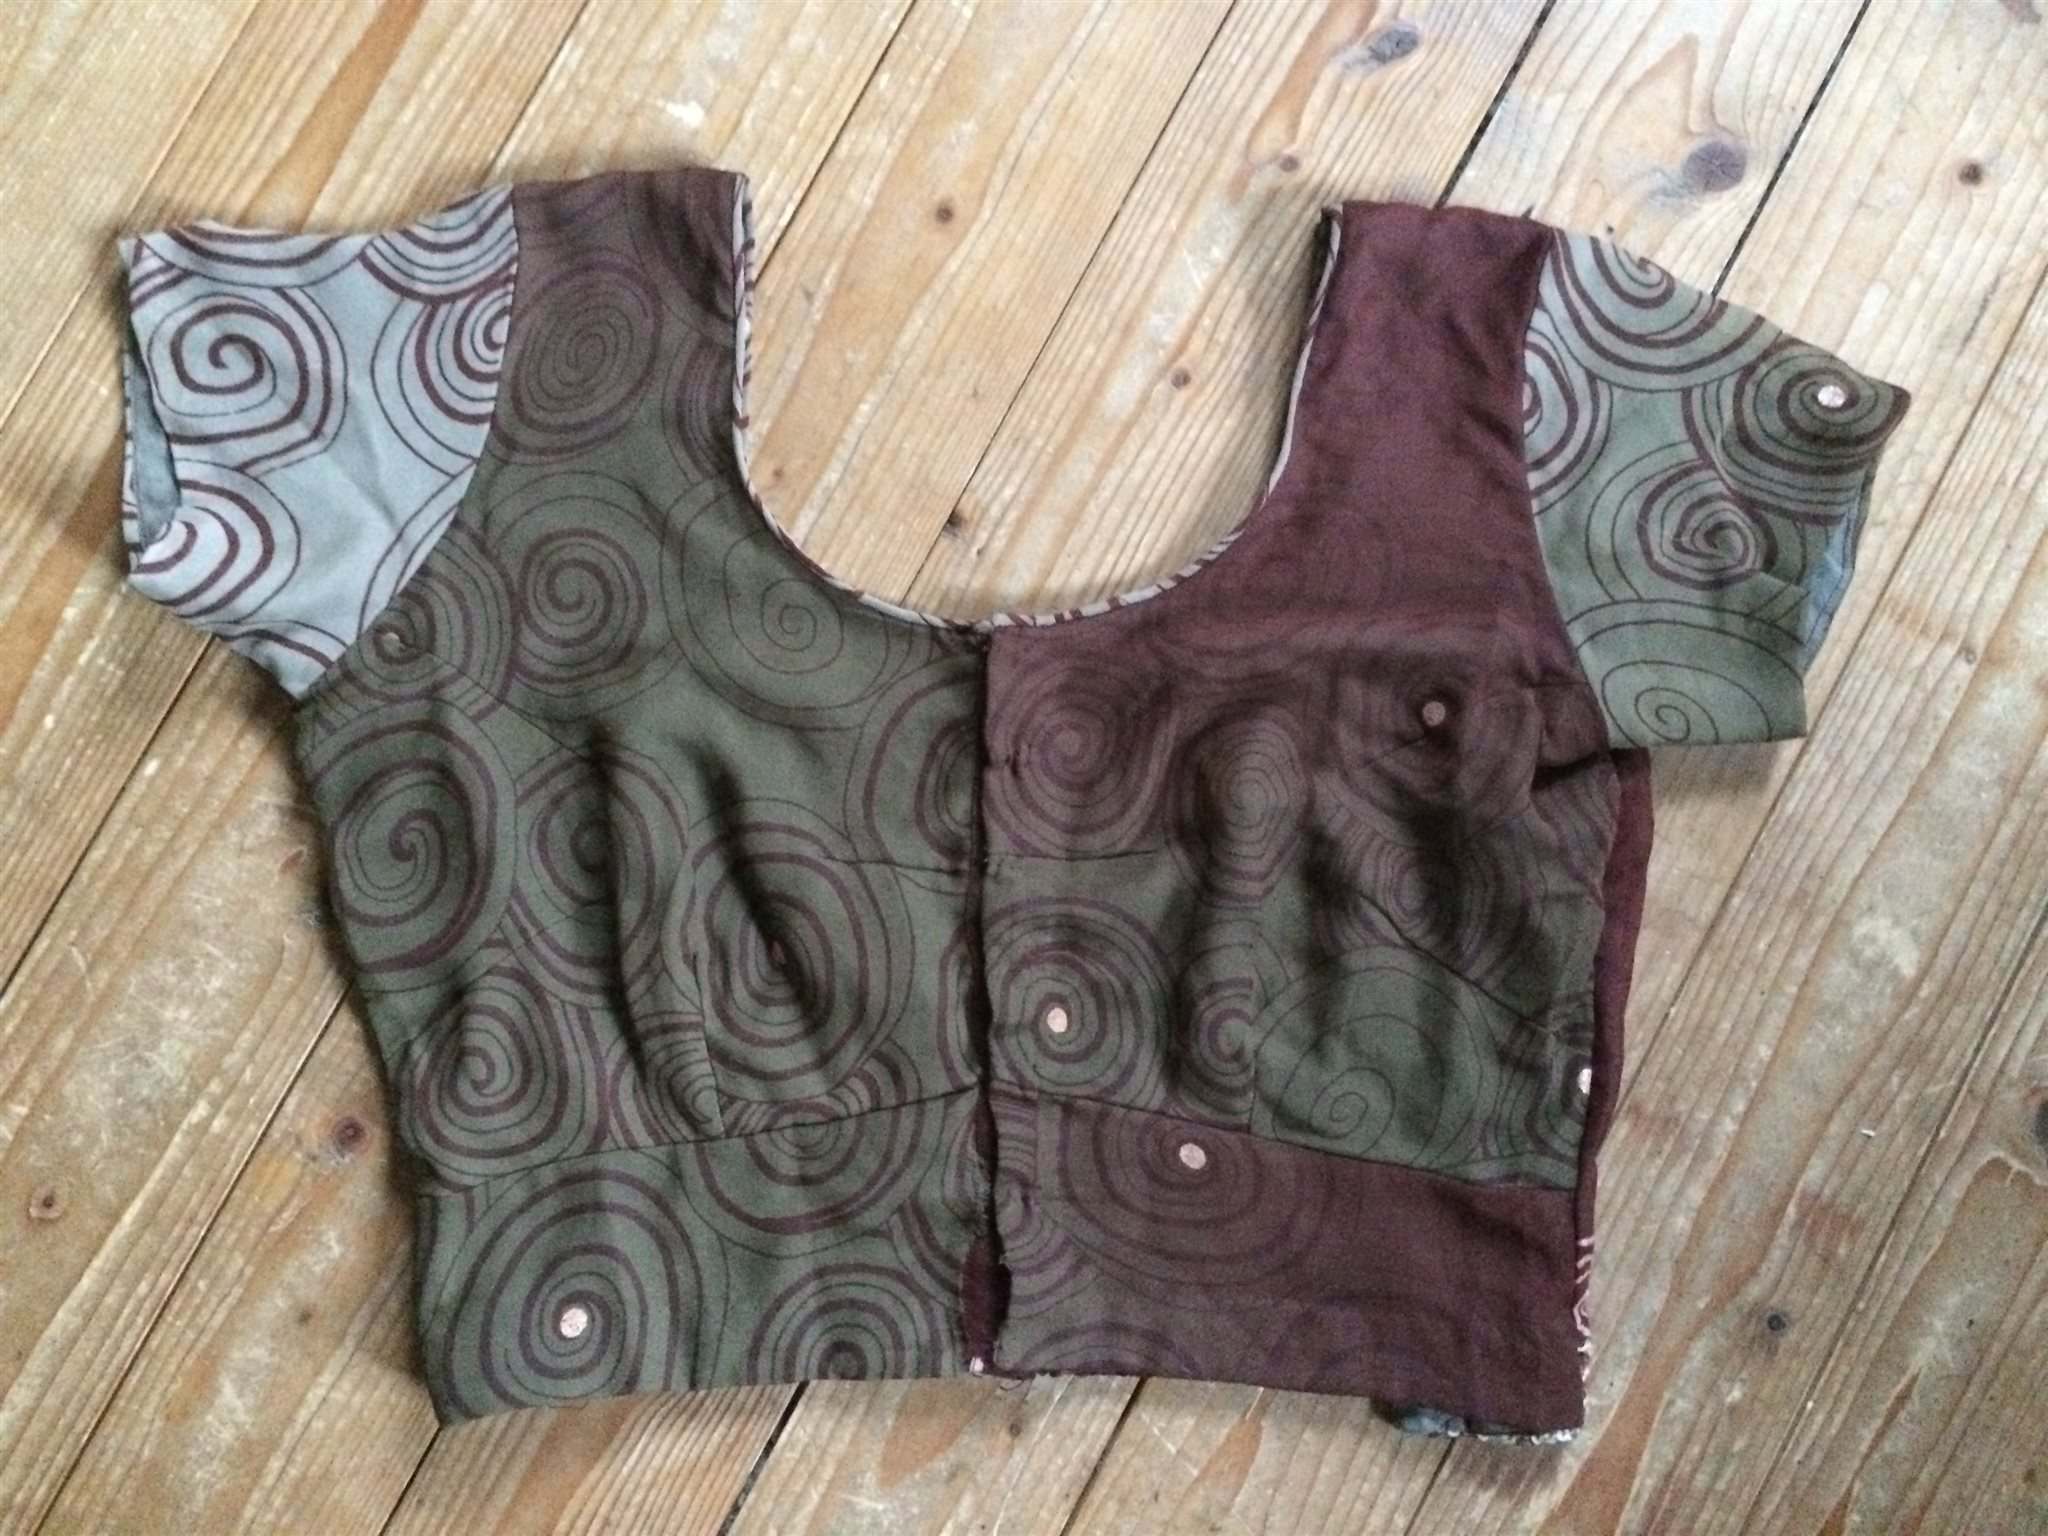 INDISK CHOLI TOP TRADITIONELL TRIBAL HIPPIE BOHEM BOHO NEW AGE CROP MAG KORT